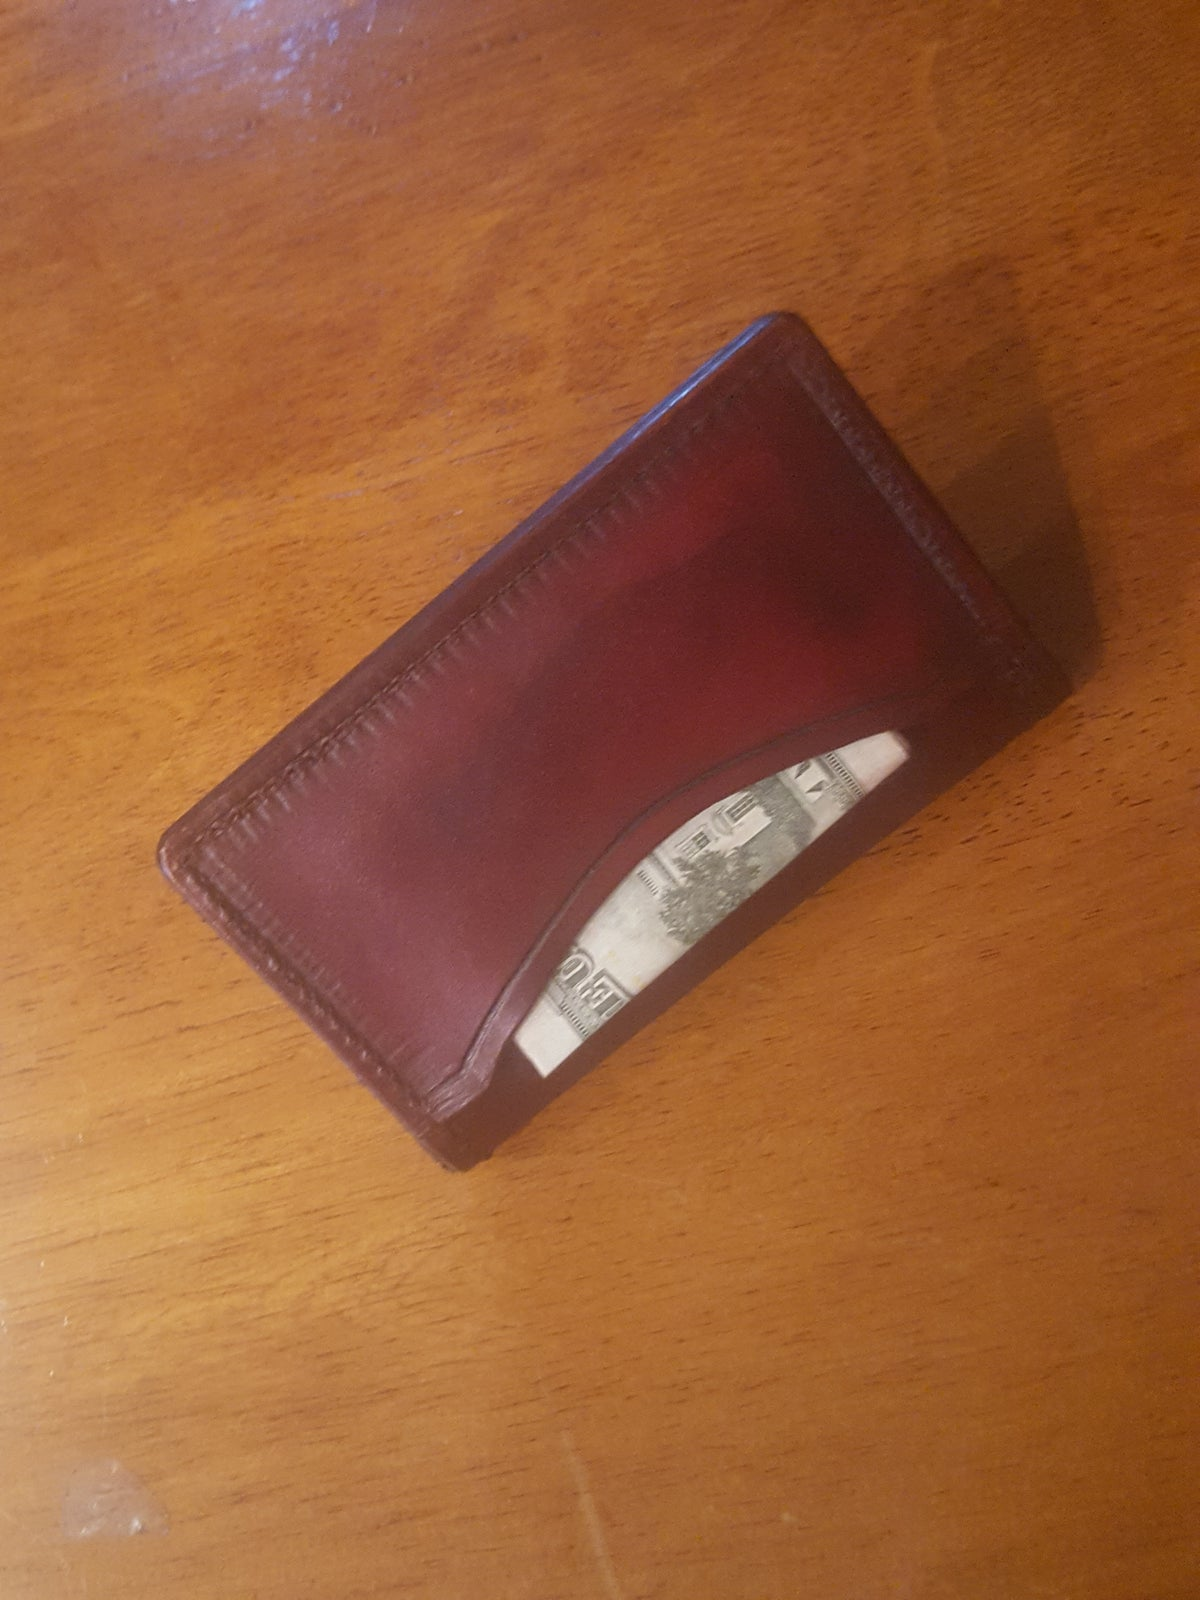 Image of Minimalist folding wallet #21 in ox blood red